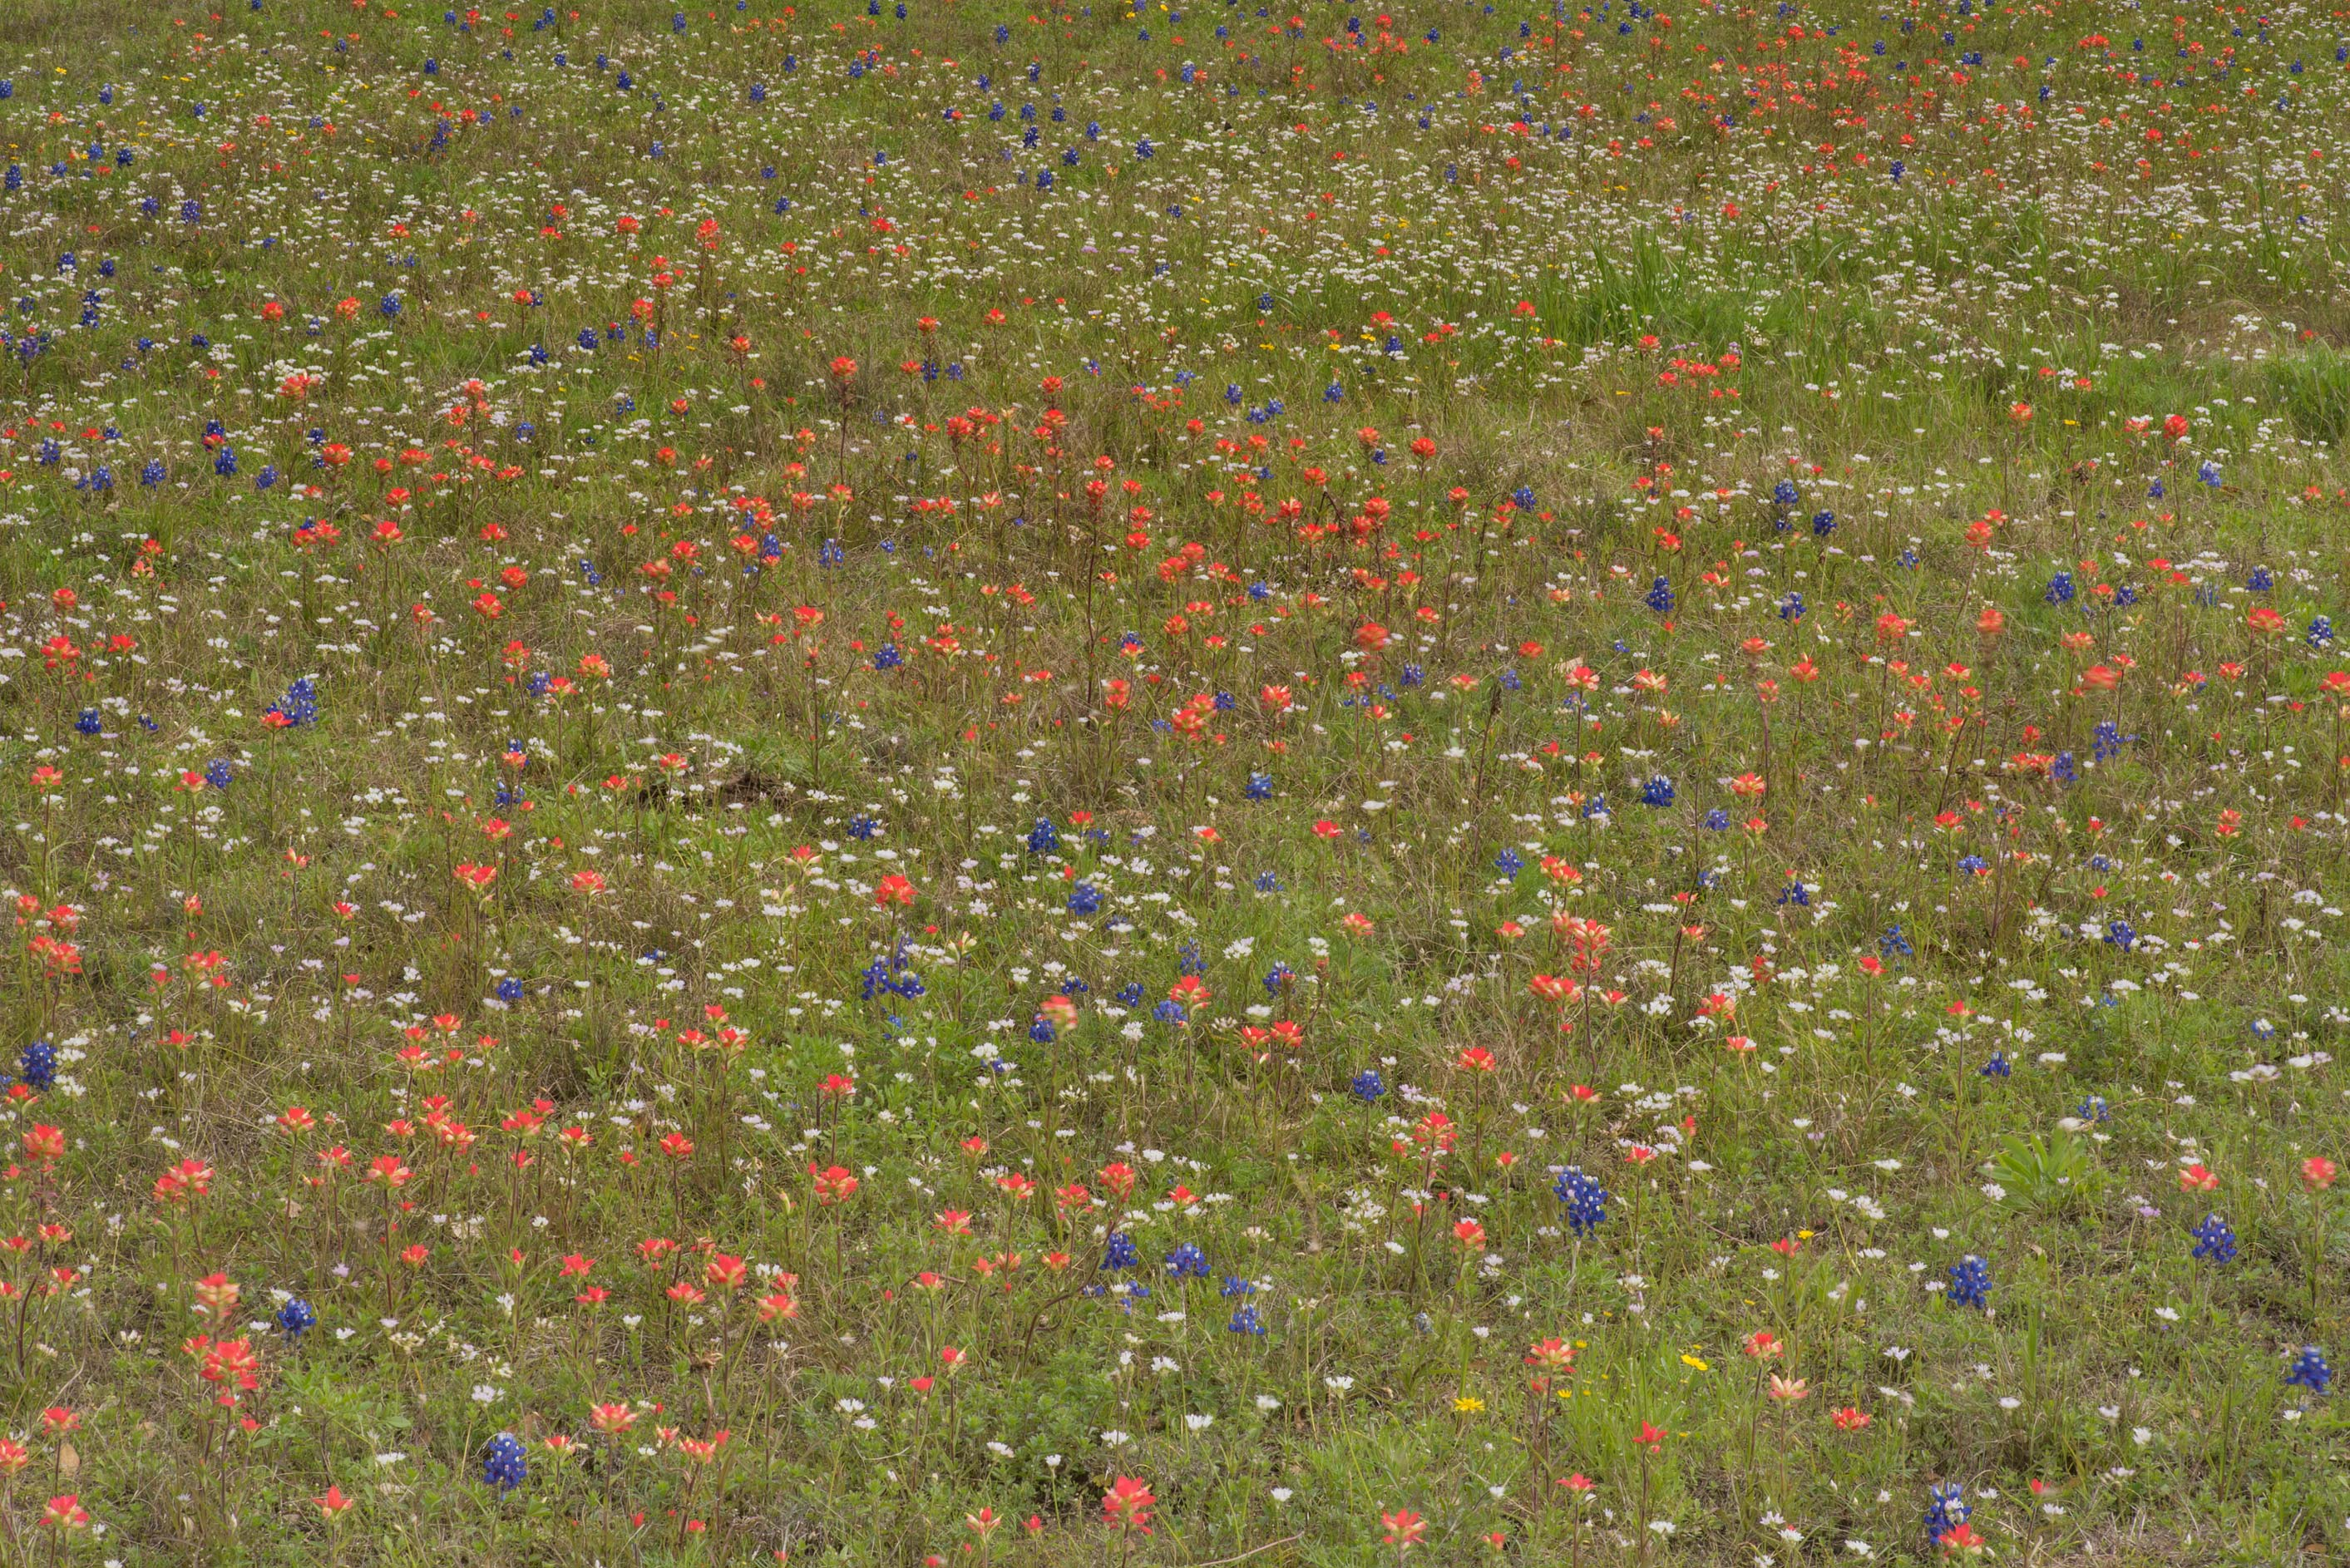 Flower field in Old Baylor Park. Independence, Texas